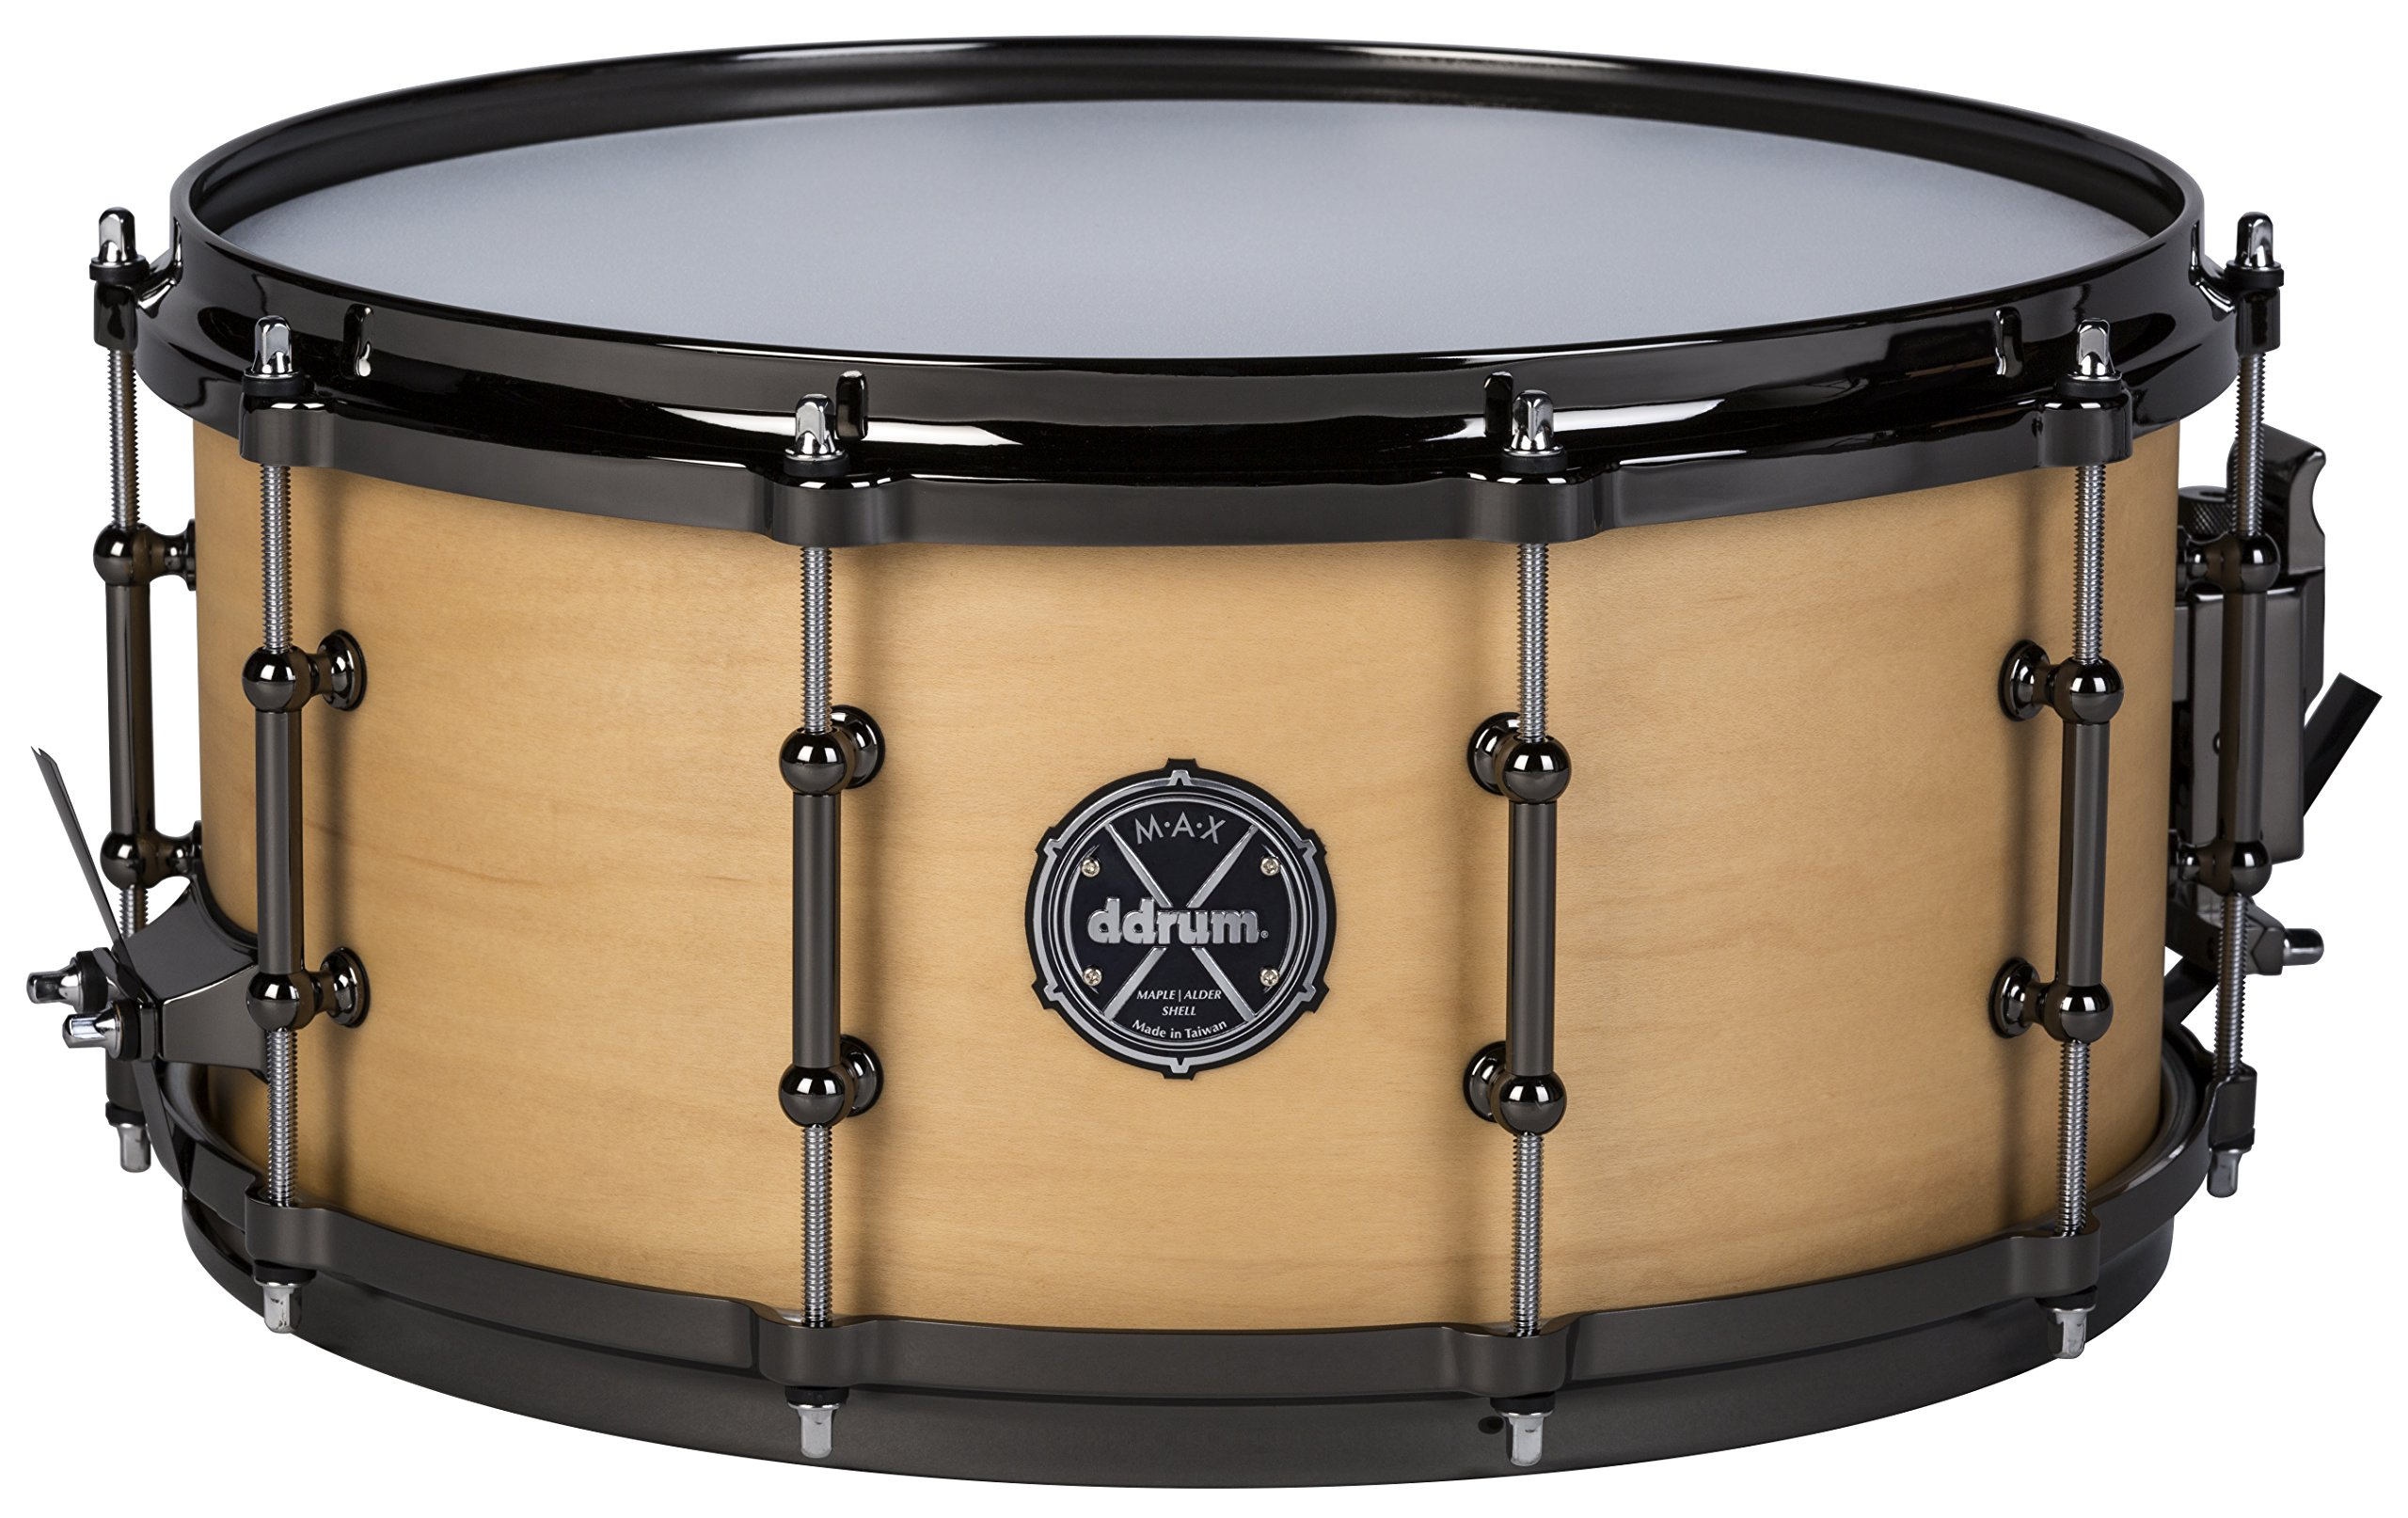 ddrum MAX Series 6.5x14 Snare Drum-Satin Natural (MAXSD65X14SN by Ddrum